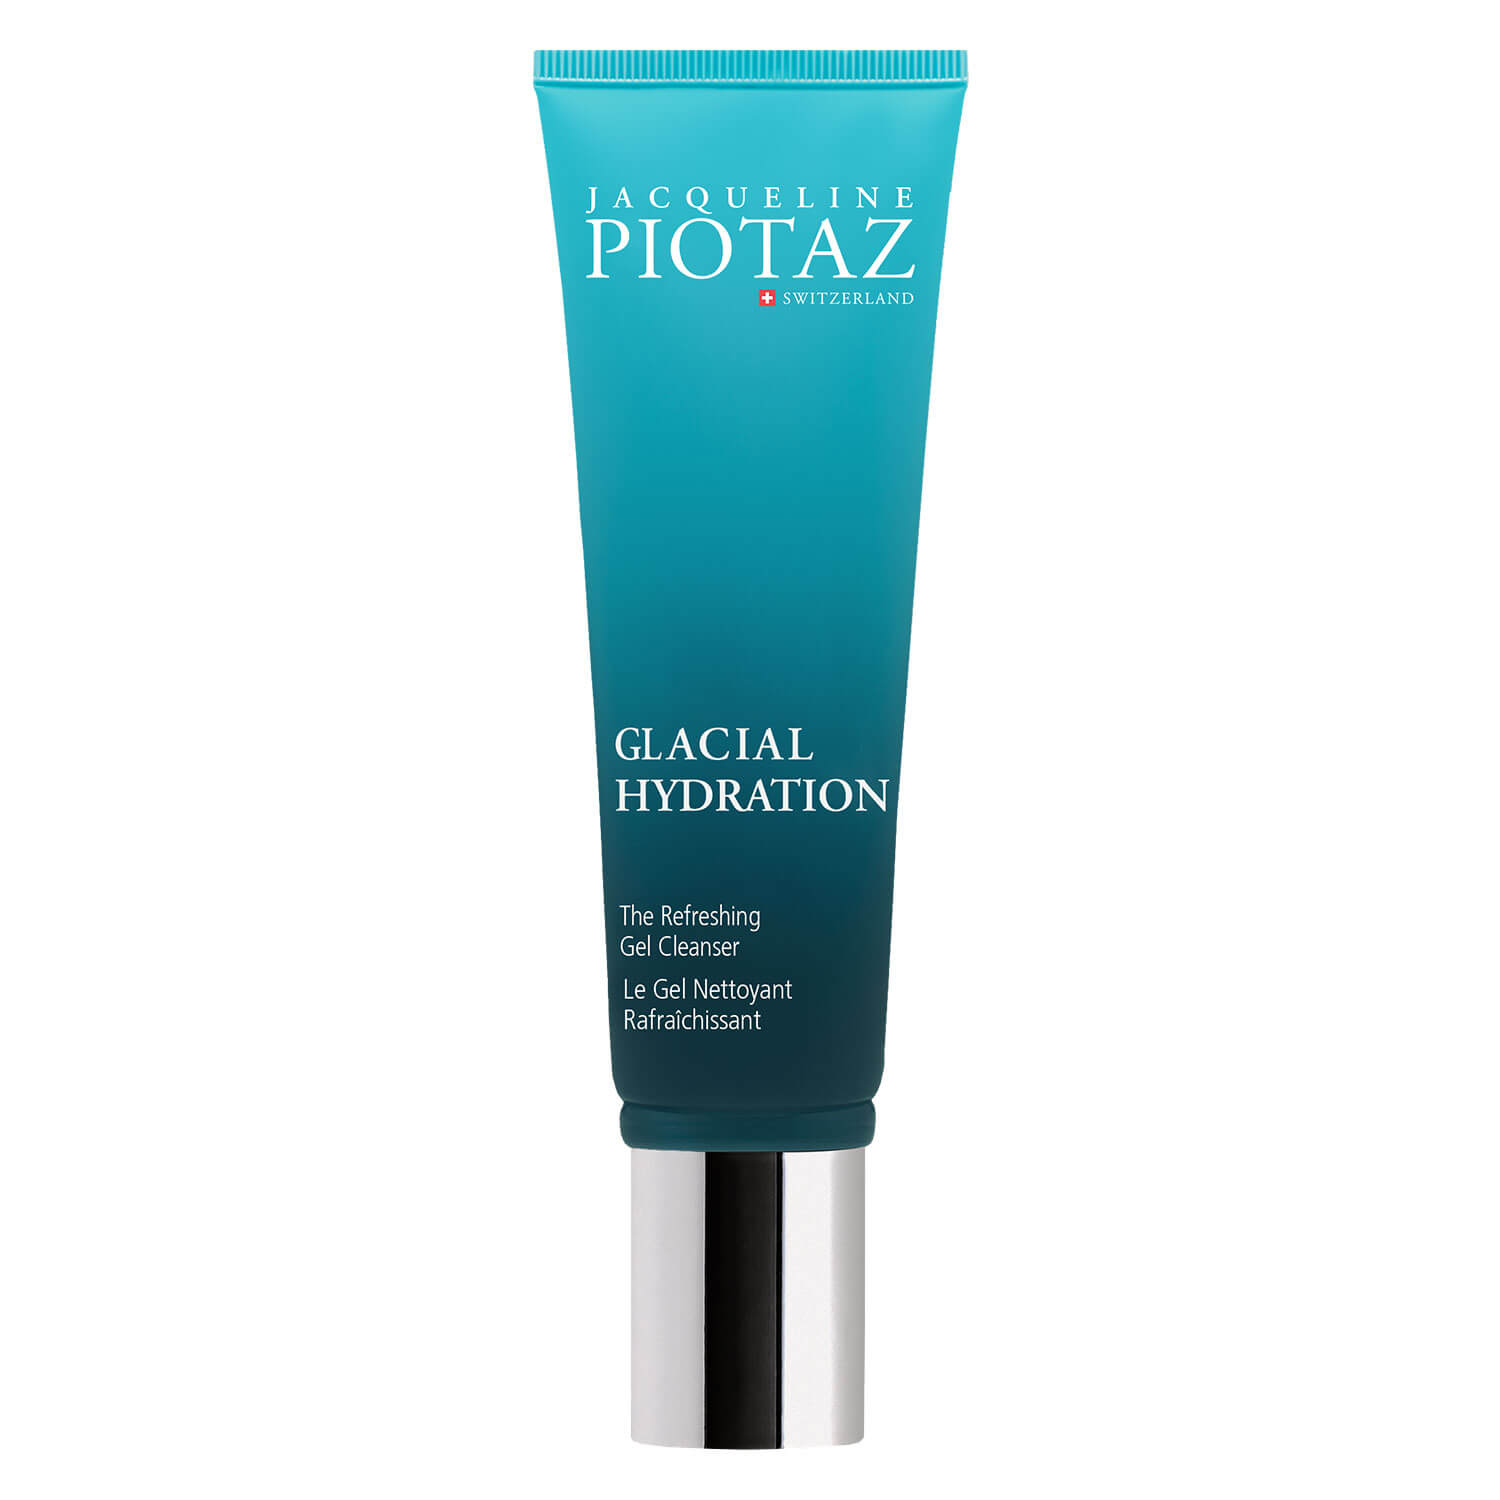 Glacial Hydration - The Refreshing Gel Cleanser - 100ml